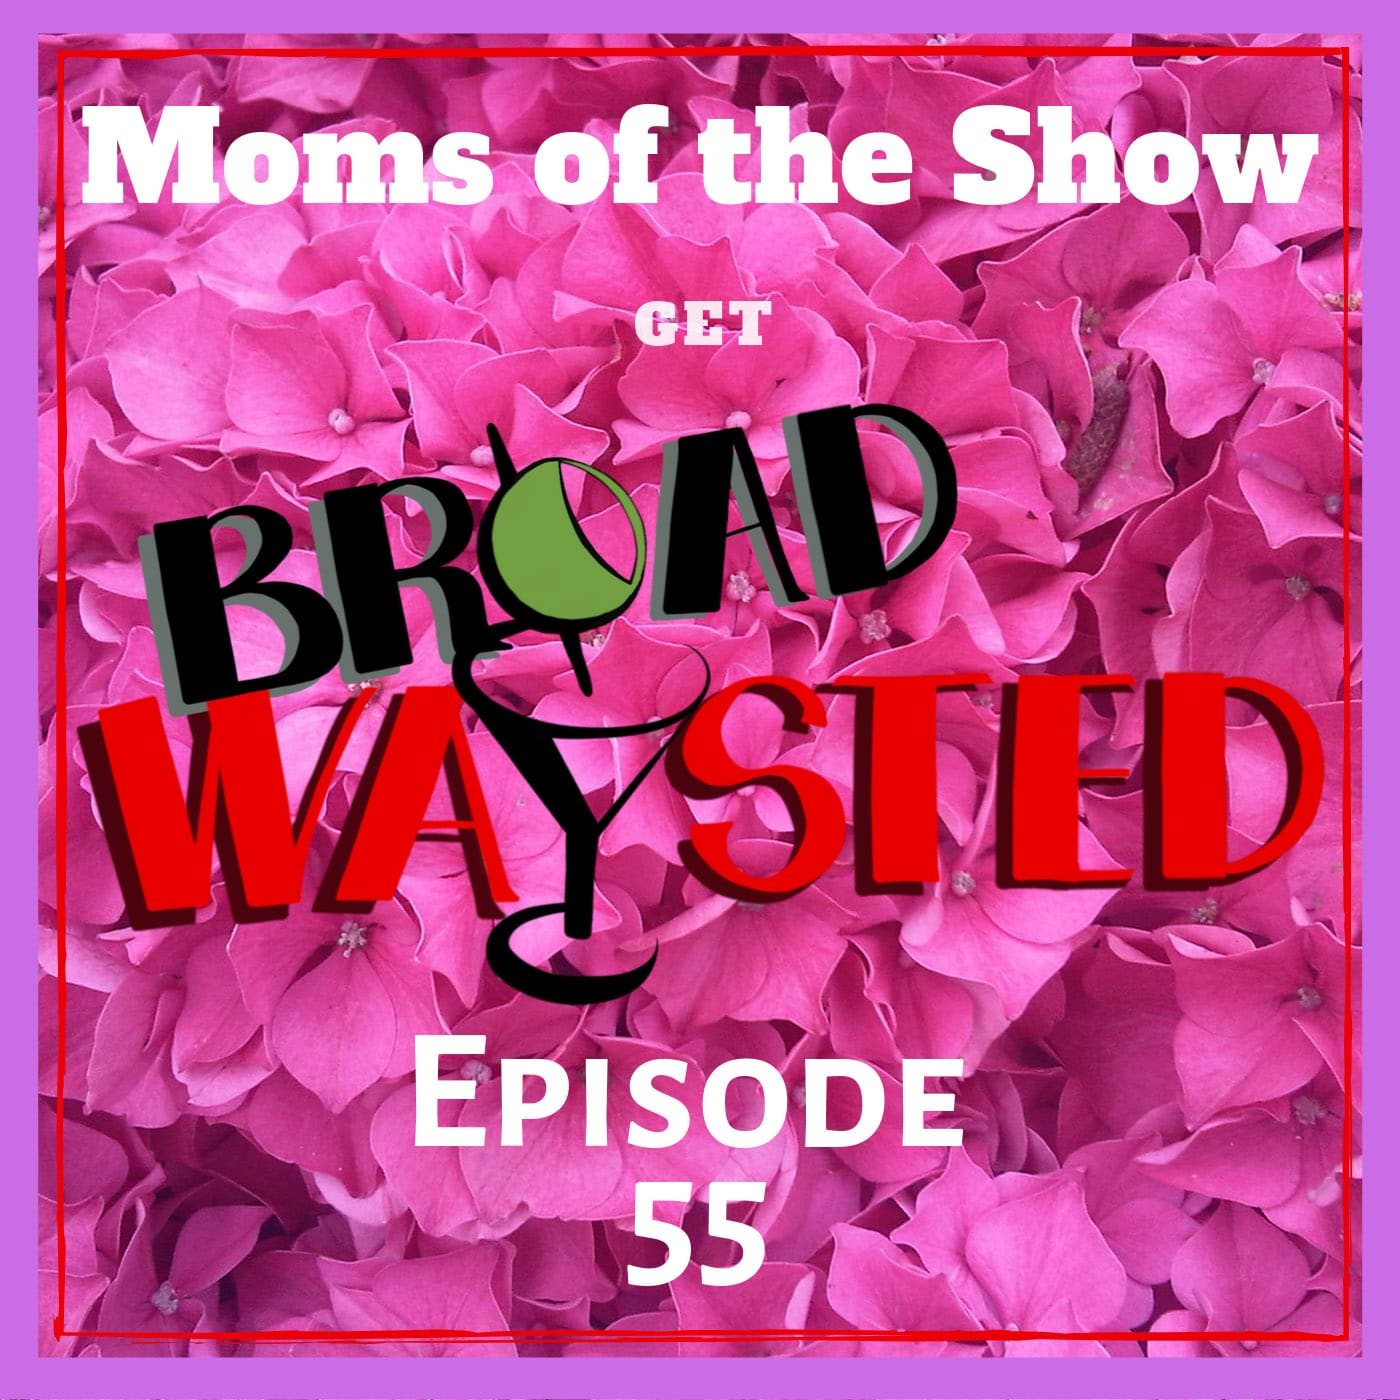 Broadwaysted Ep 55 Moms of the Show